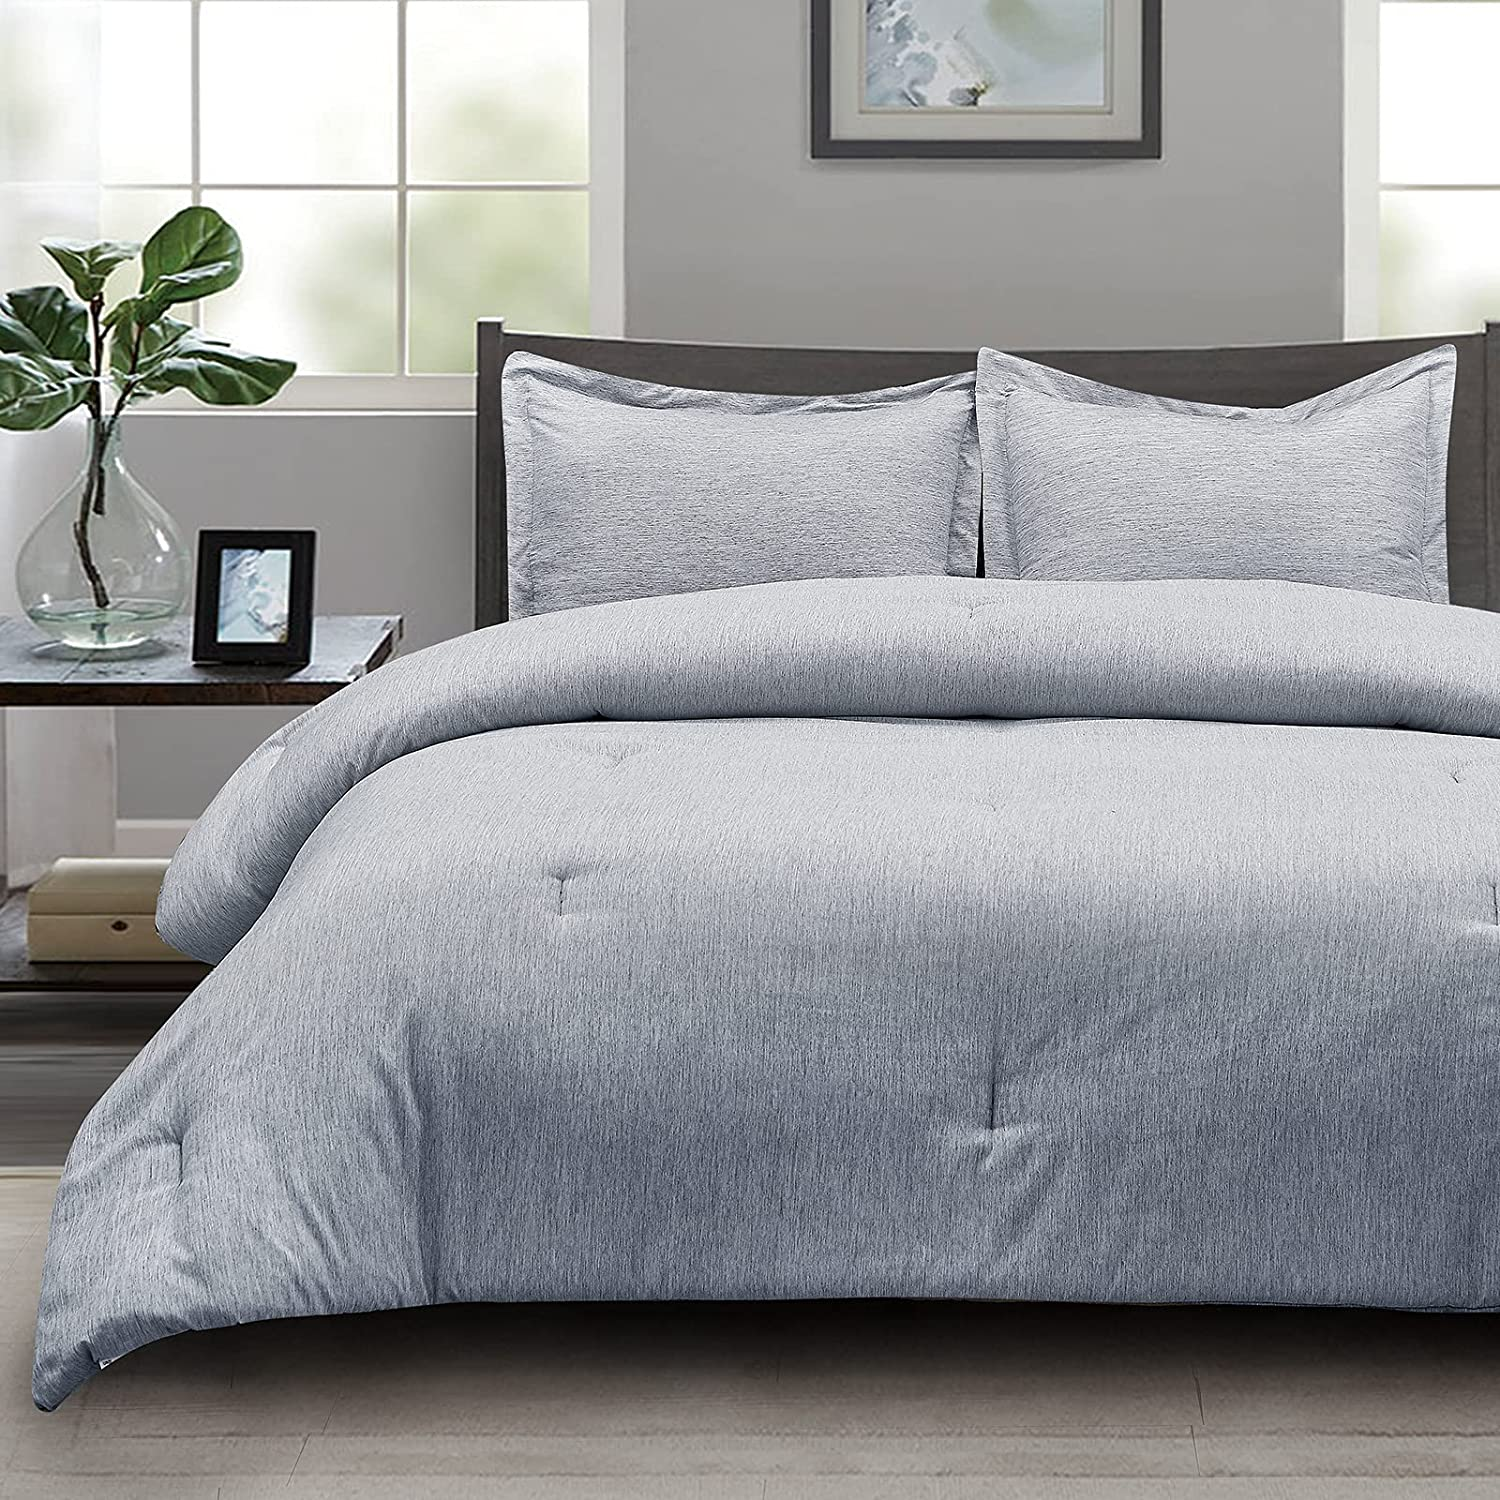 CozyLux Queen Comforter Free shipping anywhere in the nation Set Navy 3-Piece Cationic Blue Award-winning store Dyeing So